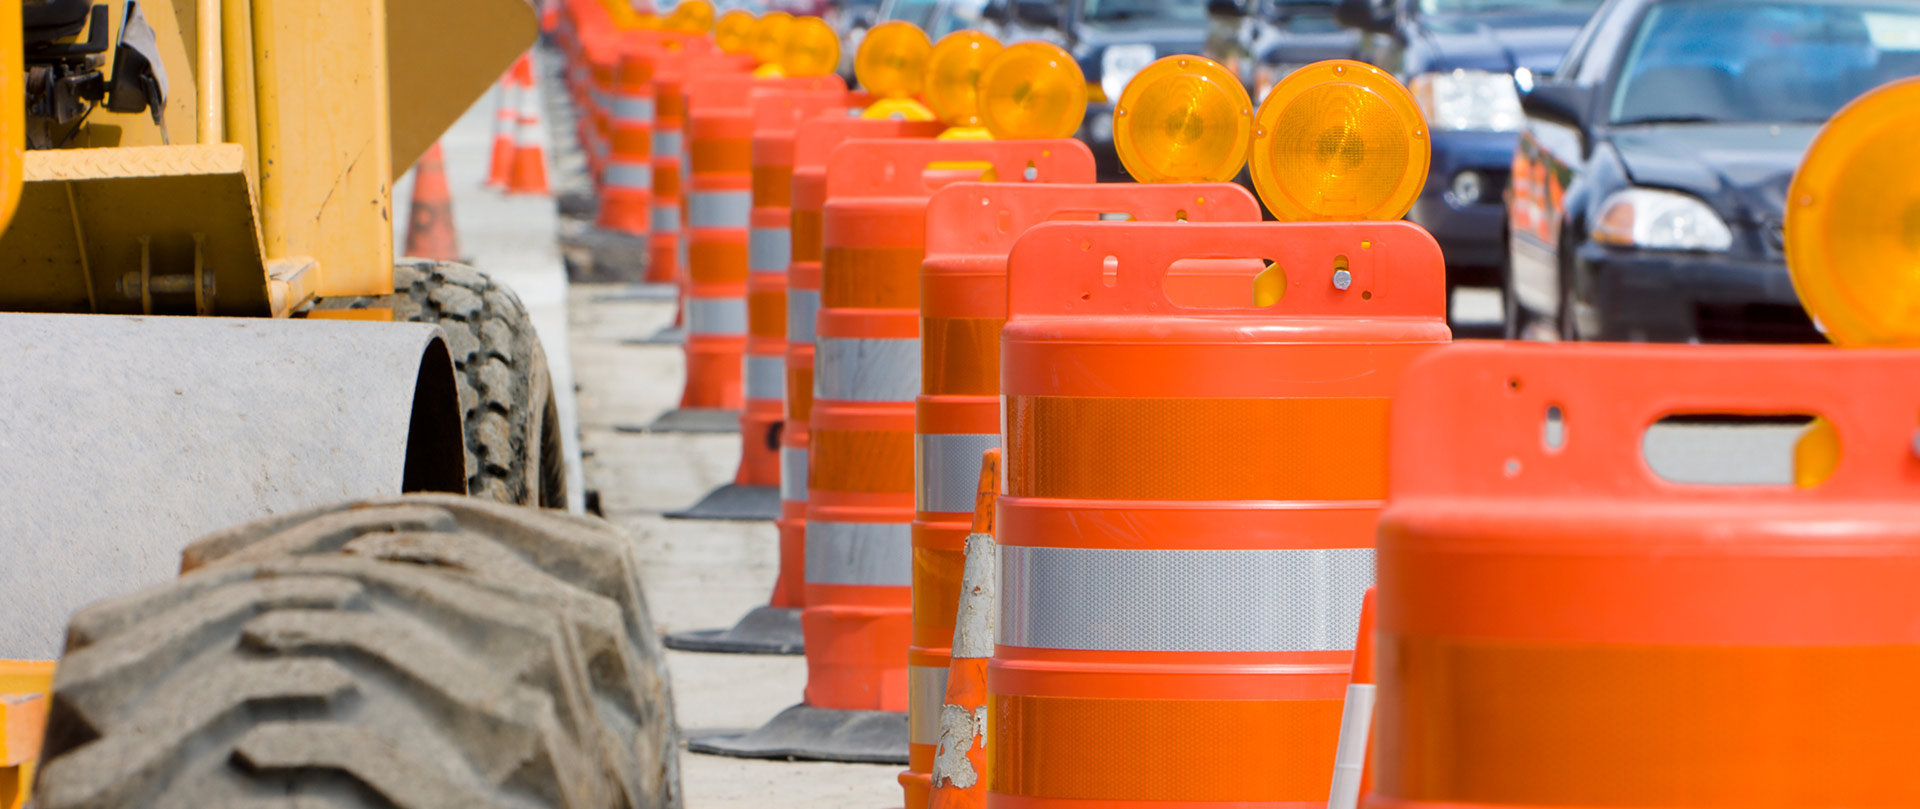 Work Zone Safety: For Drivers